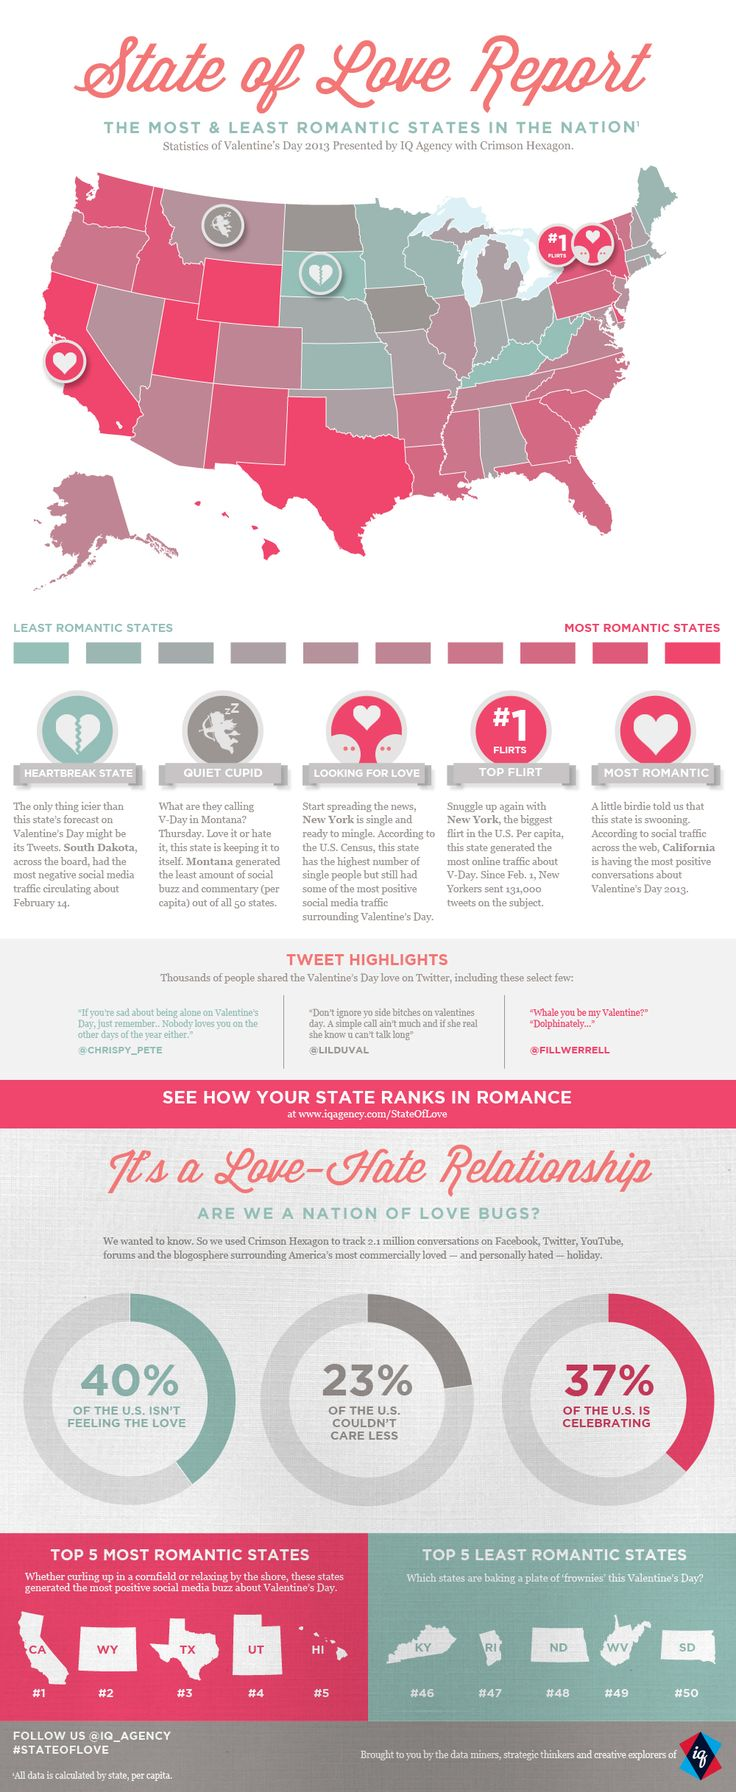 The Most and Least Romantic States in America